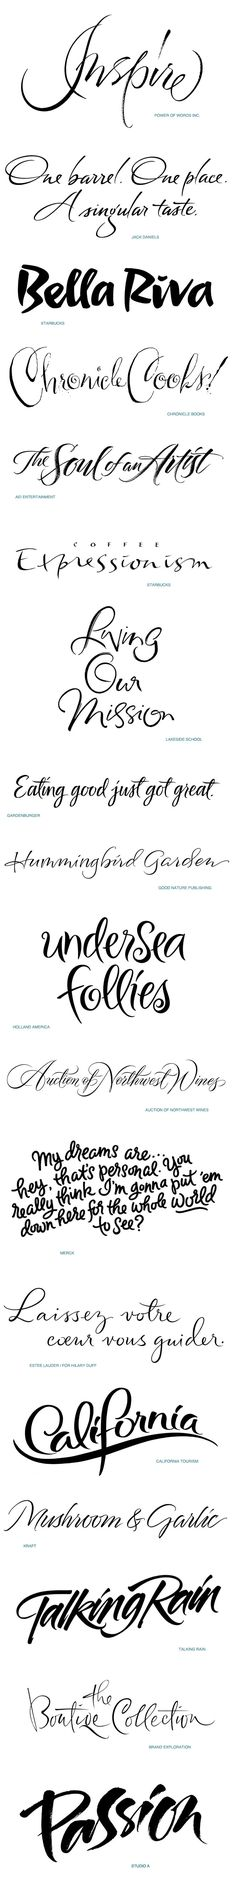 Contemporary Script Lettering Portfolio One on Behance